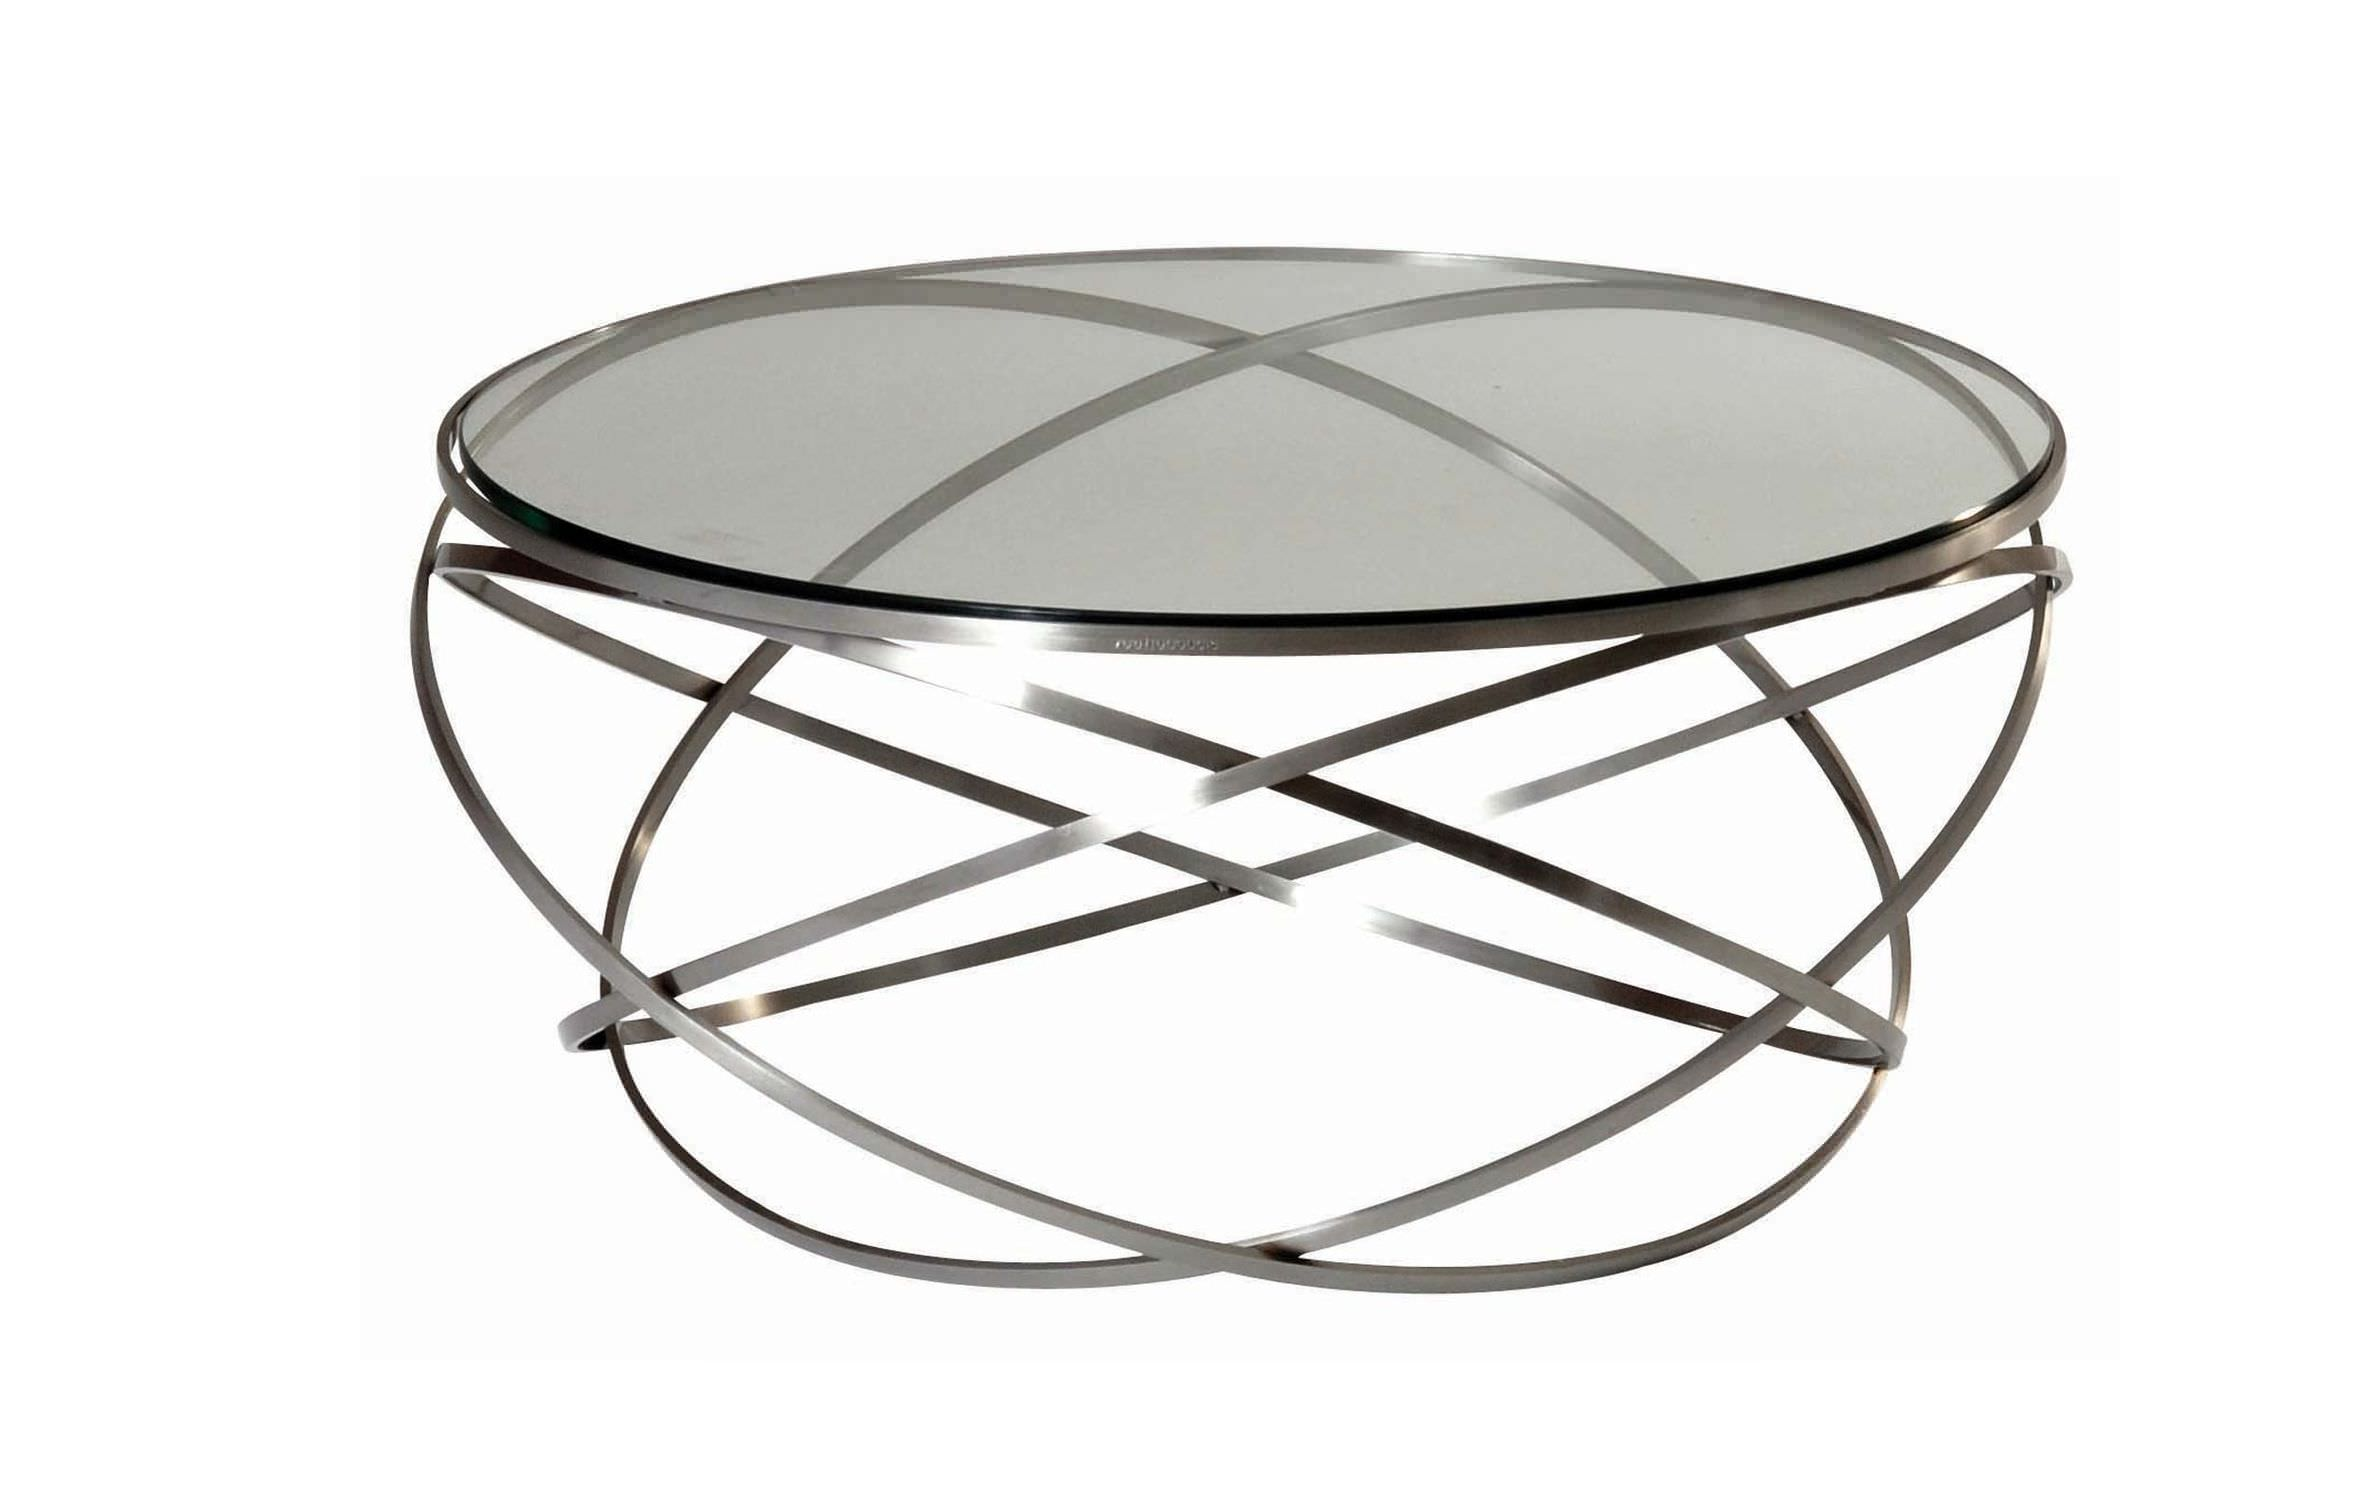 round-metal-and-glass-coffee-table-living-room-furniture-futuristic-frosted-glass-coffee-table-with-unique-stainless-steel-frame-round-coffee-table-with-metal-legs (Image 5 of 10)